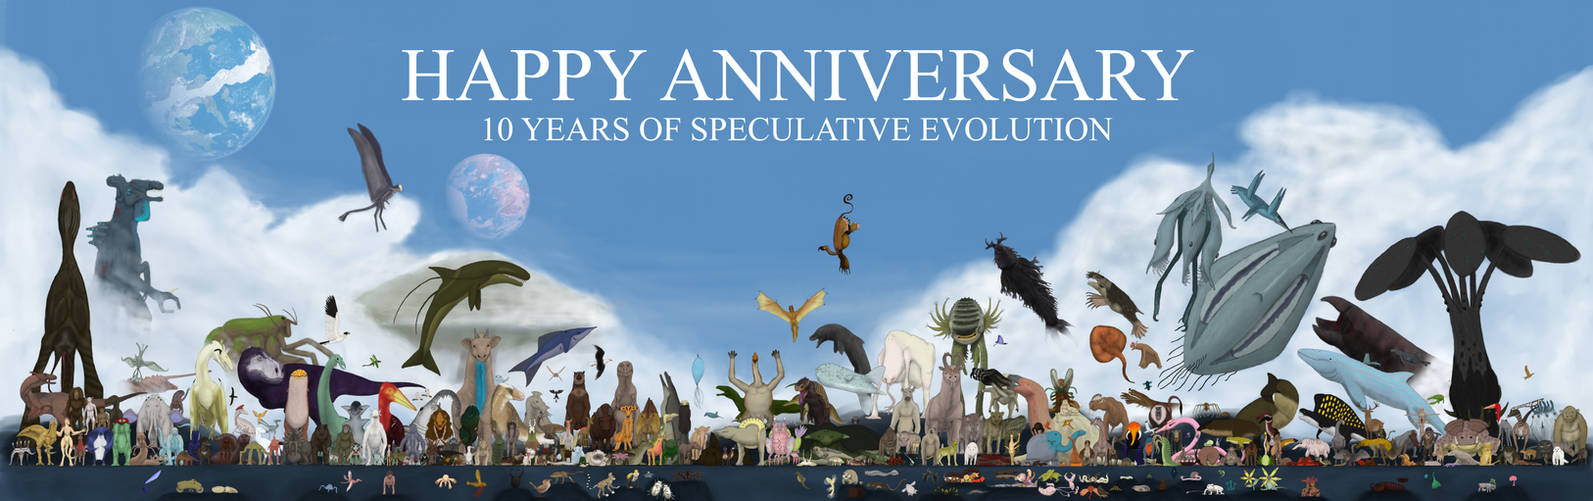 Speculative Evolution Forum, A Decade of Wonders